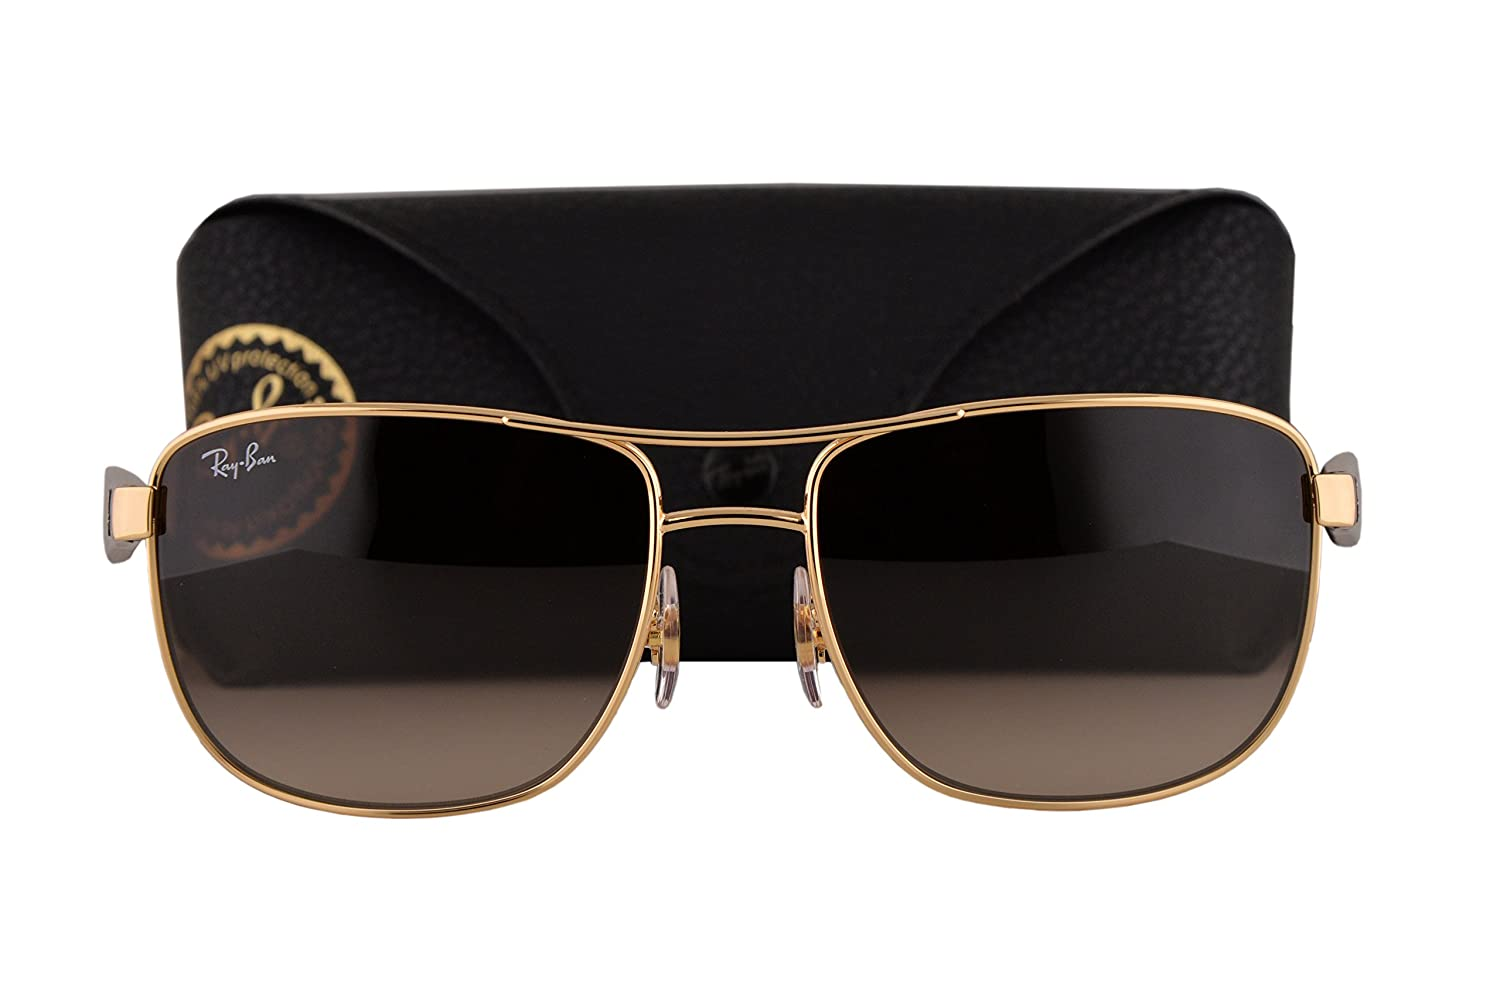 c2a867d8fa Ray Ban RB3533 Sunglasses Gold w Brown Gradient Lens 00113 RB 3533   Amazon.co.uk  Clothing